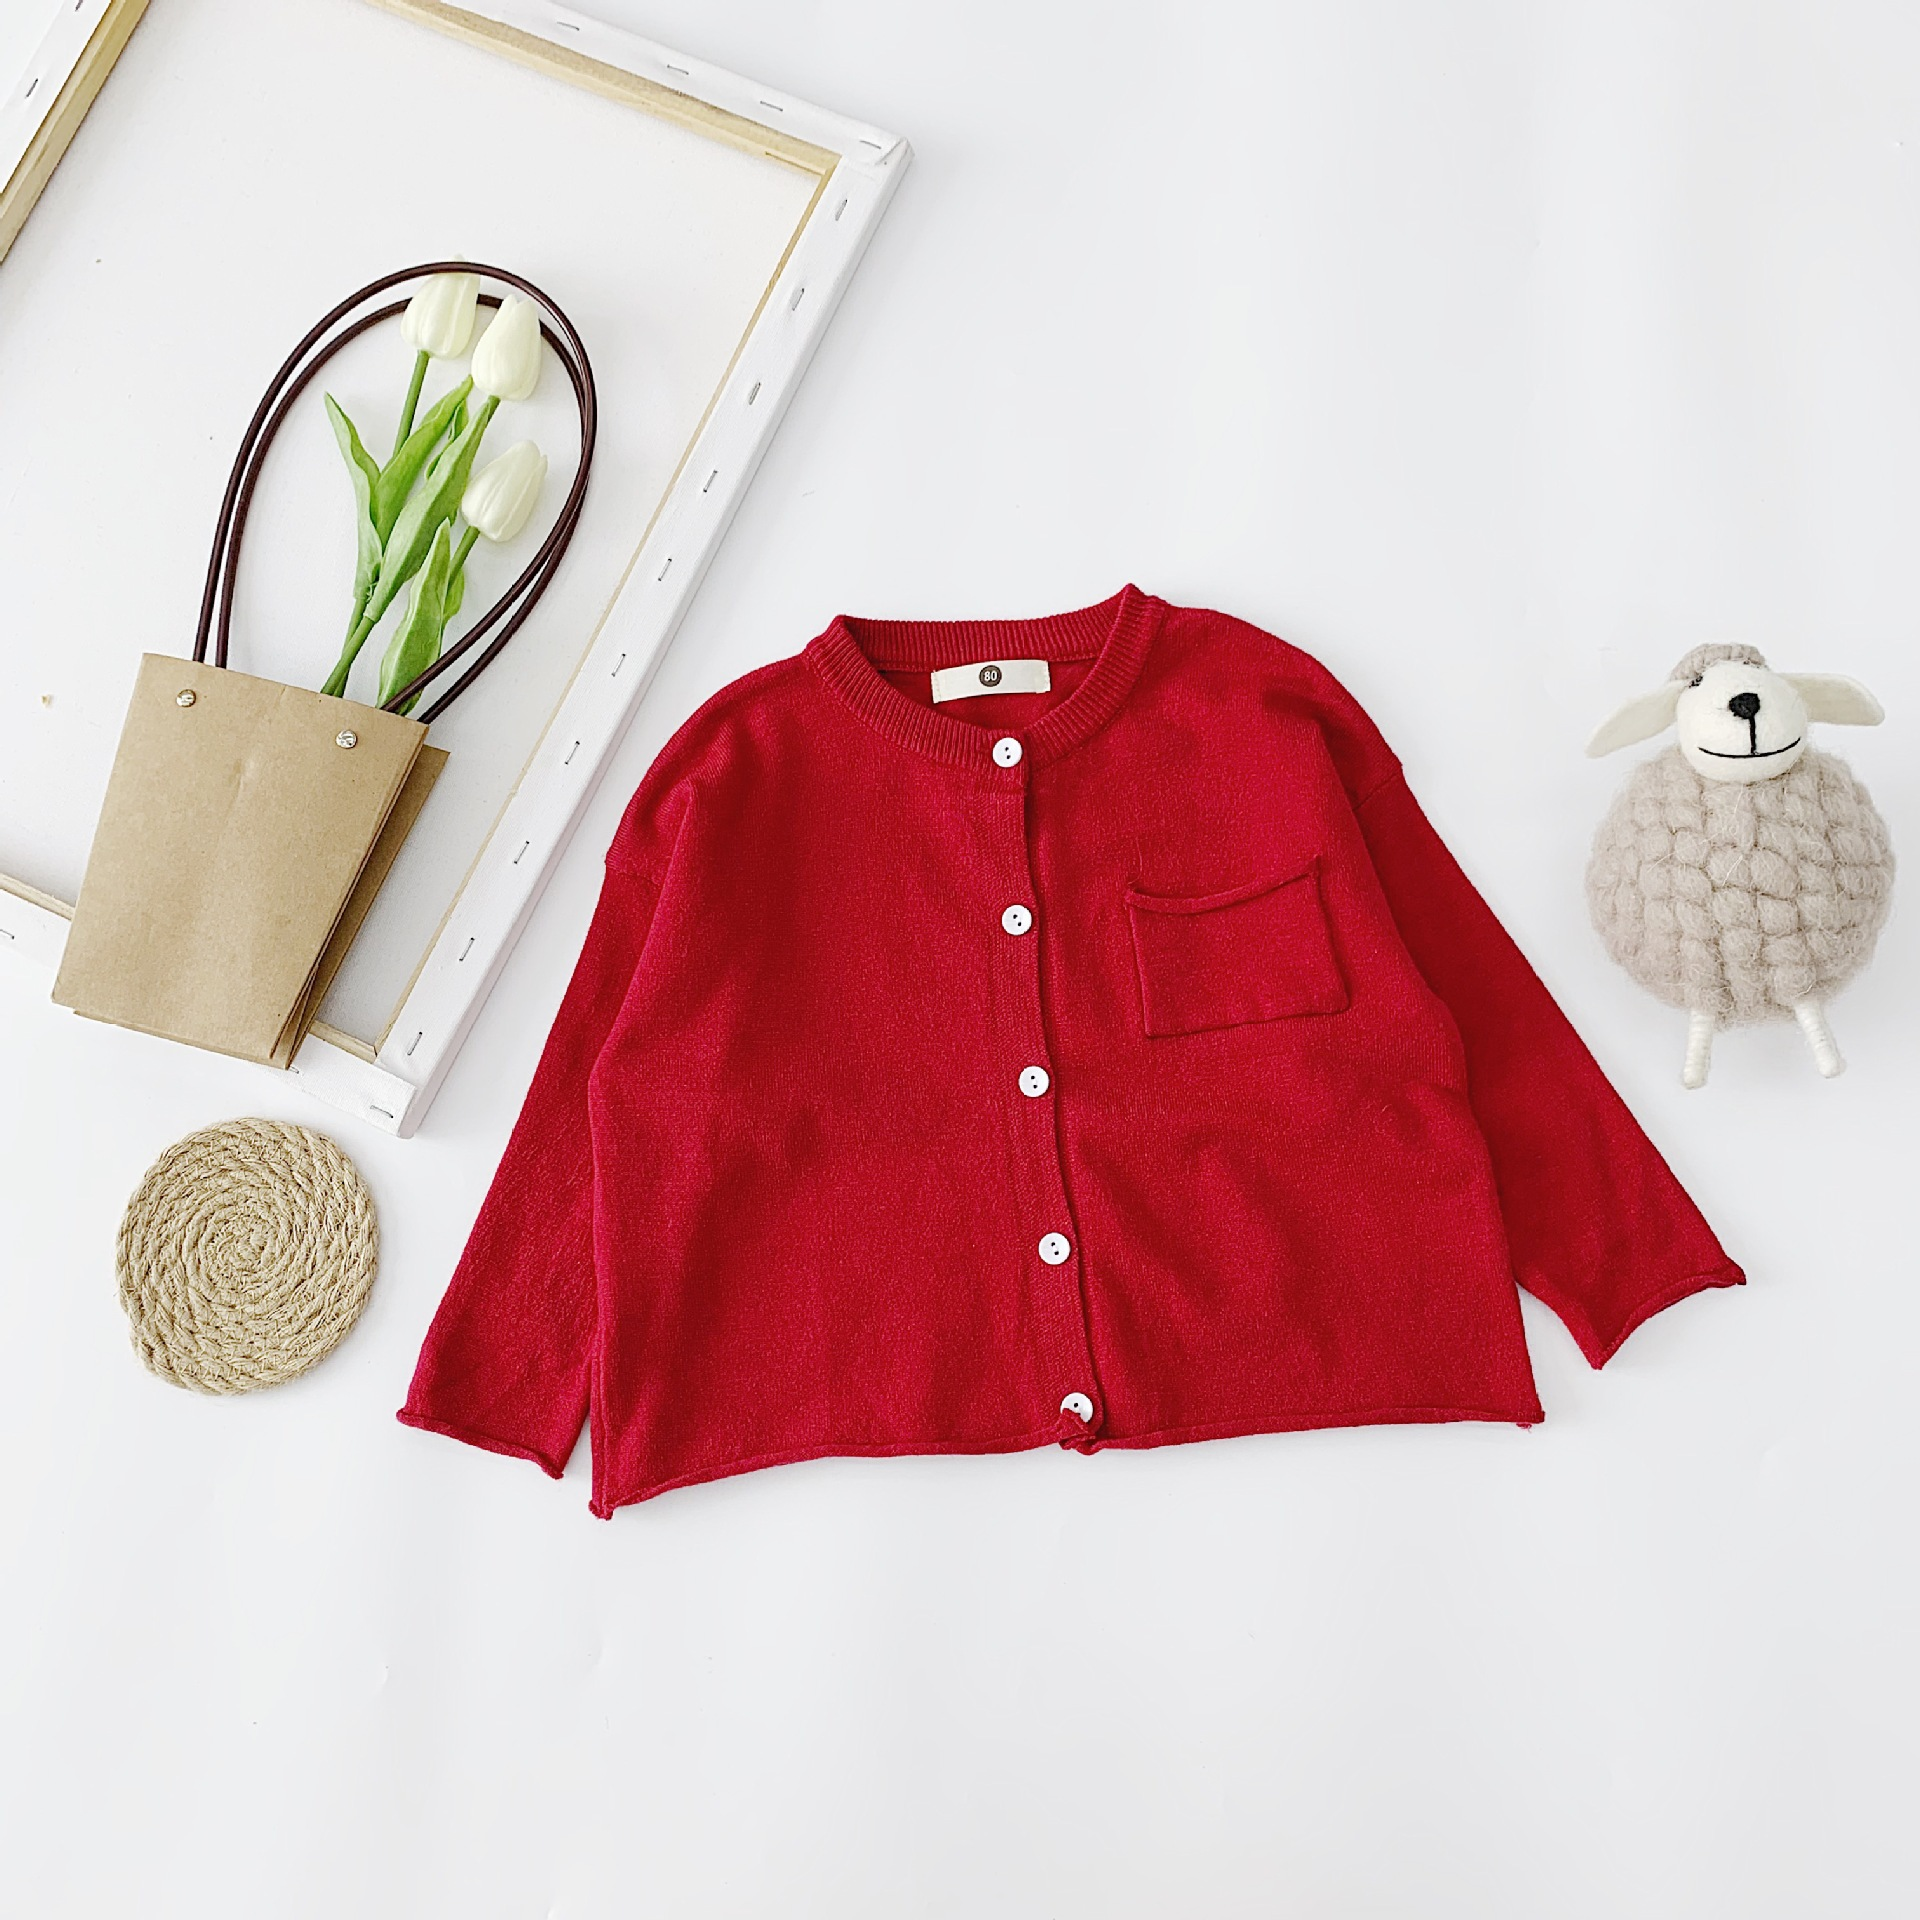 Children Autumn Coat 2019 New Style Korean-style Children Baby Girls Solid Color Knitted Sweater Loose Version Cardigan